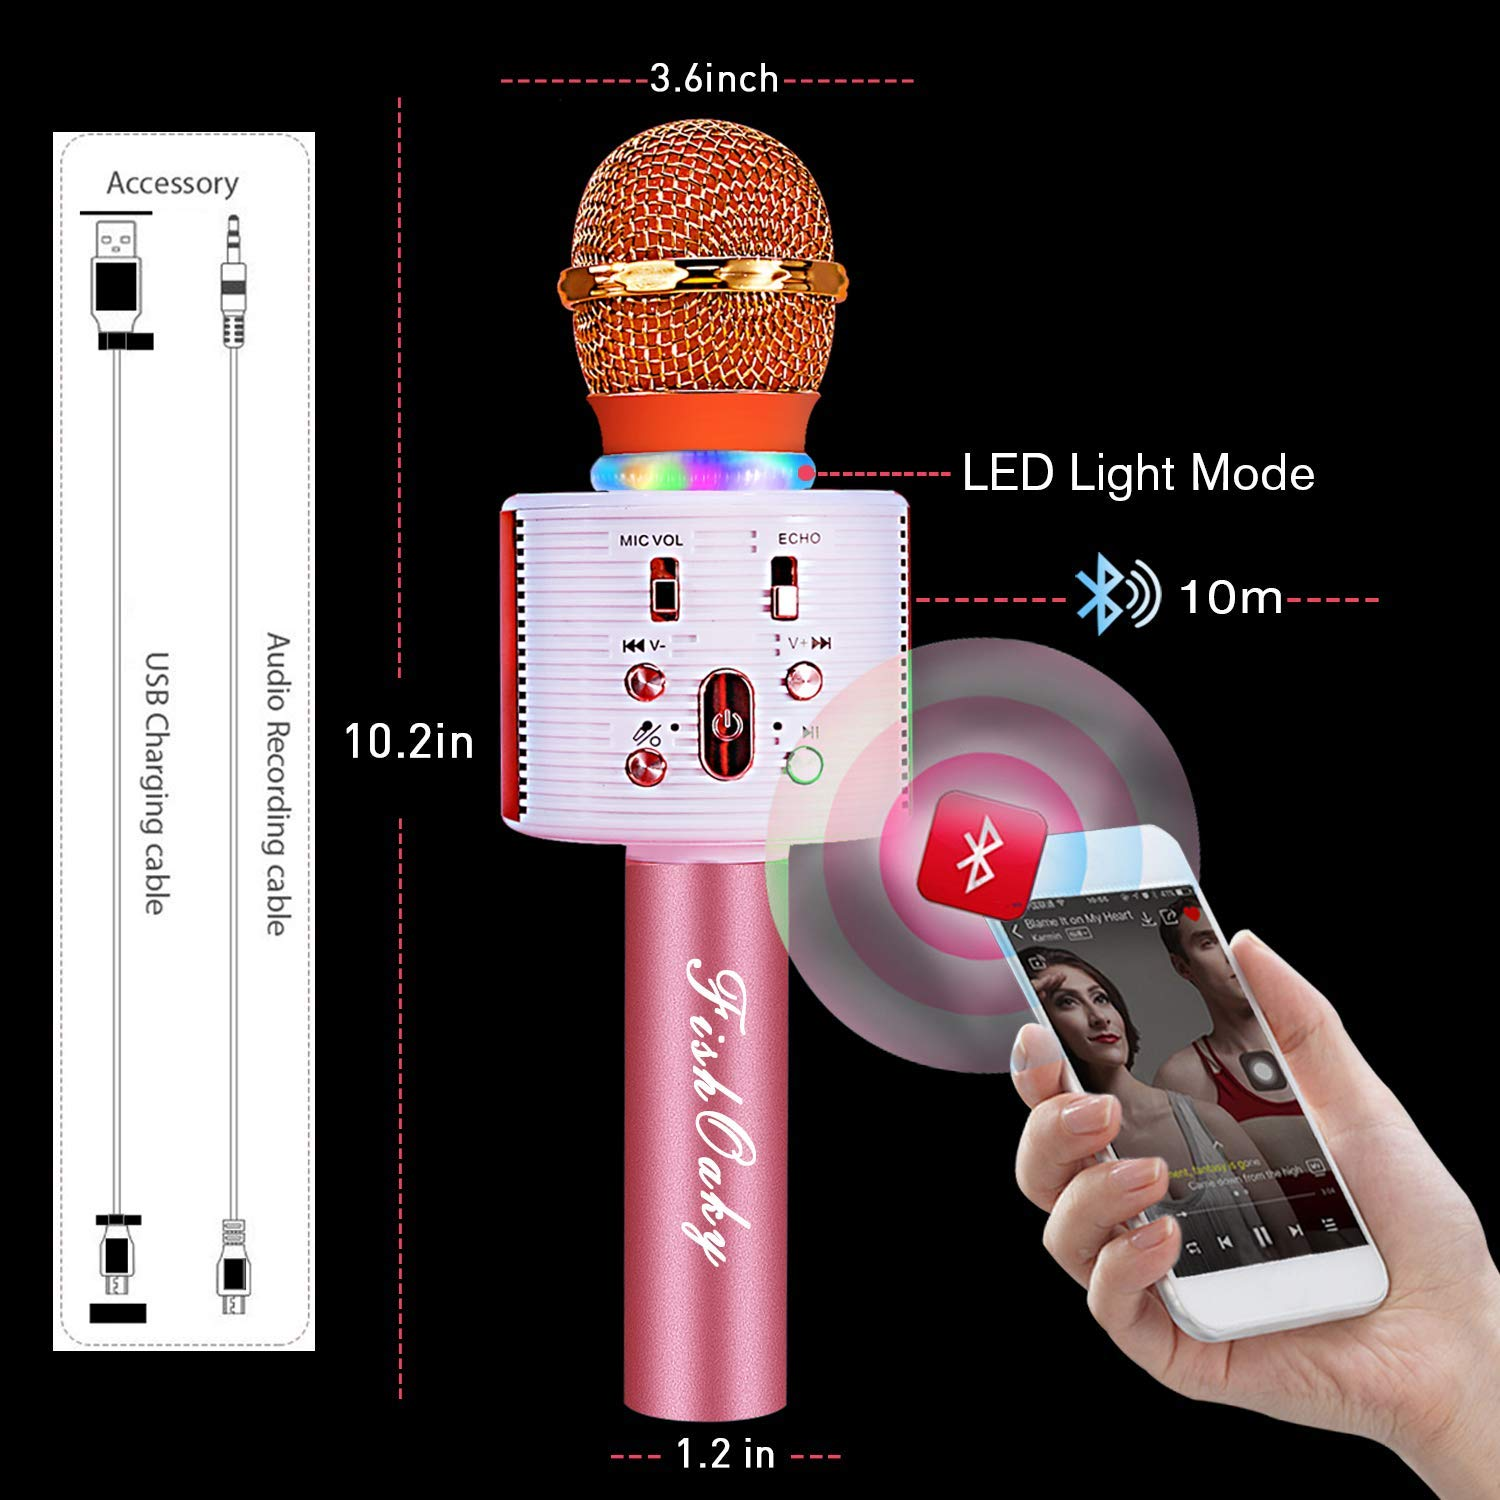 FishOaky Wireless Bluetooth Karaoke Microphone, Portable Kids Microphone Karaoke Player Speaker with LED & Music Singing Voice Recording for Home KTV Kids Outdoor Birthday Party (Rose Gold) by FishOaky (Image #3)